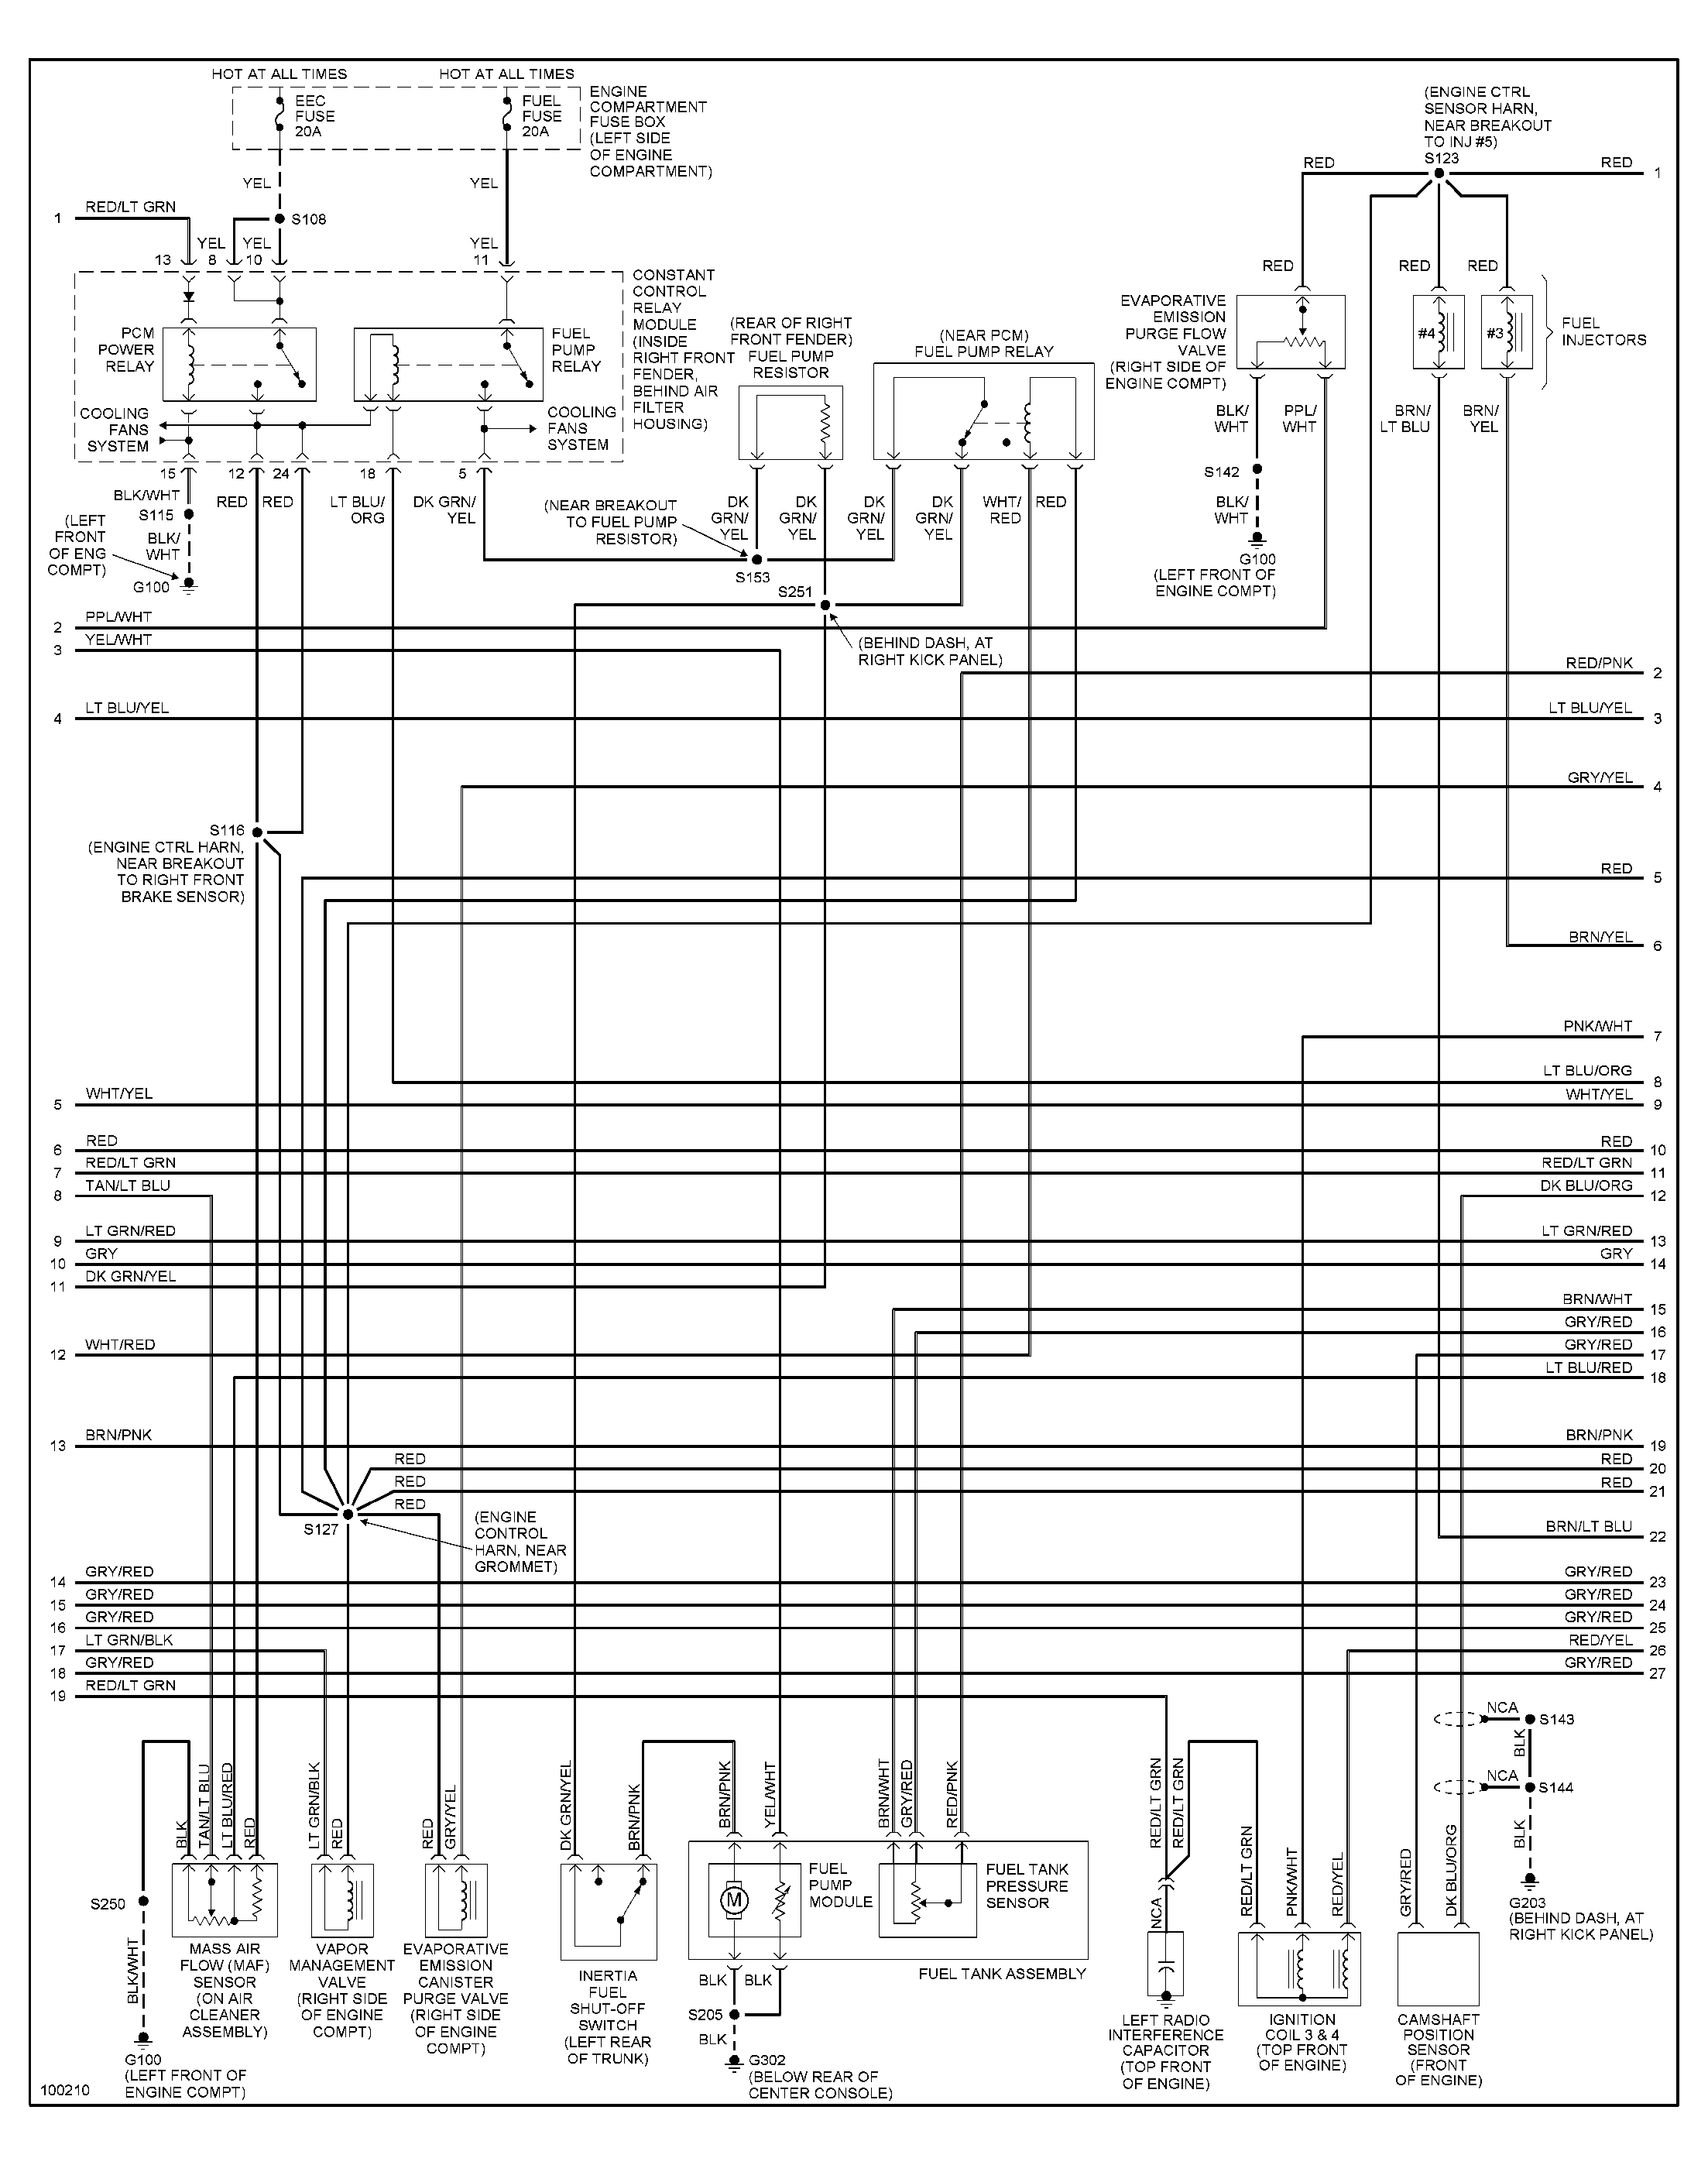 2000 ford Mustang Fuel Pump Wiring Diagram Suspension ford Mustang Fuel Pump Relay Wiring 1965 ford Thunderbird